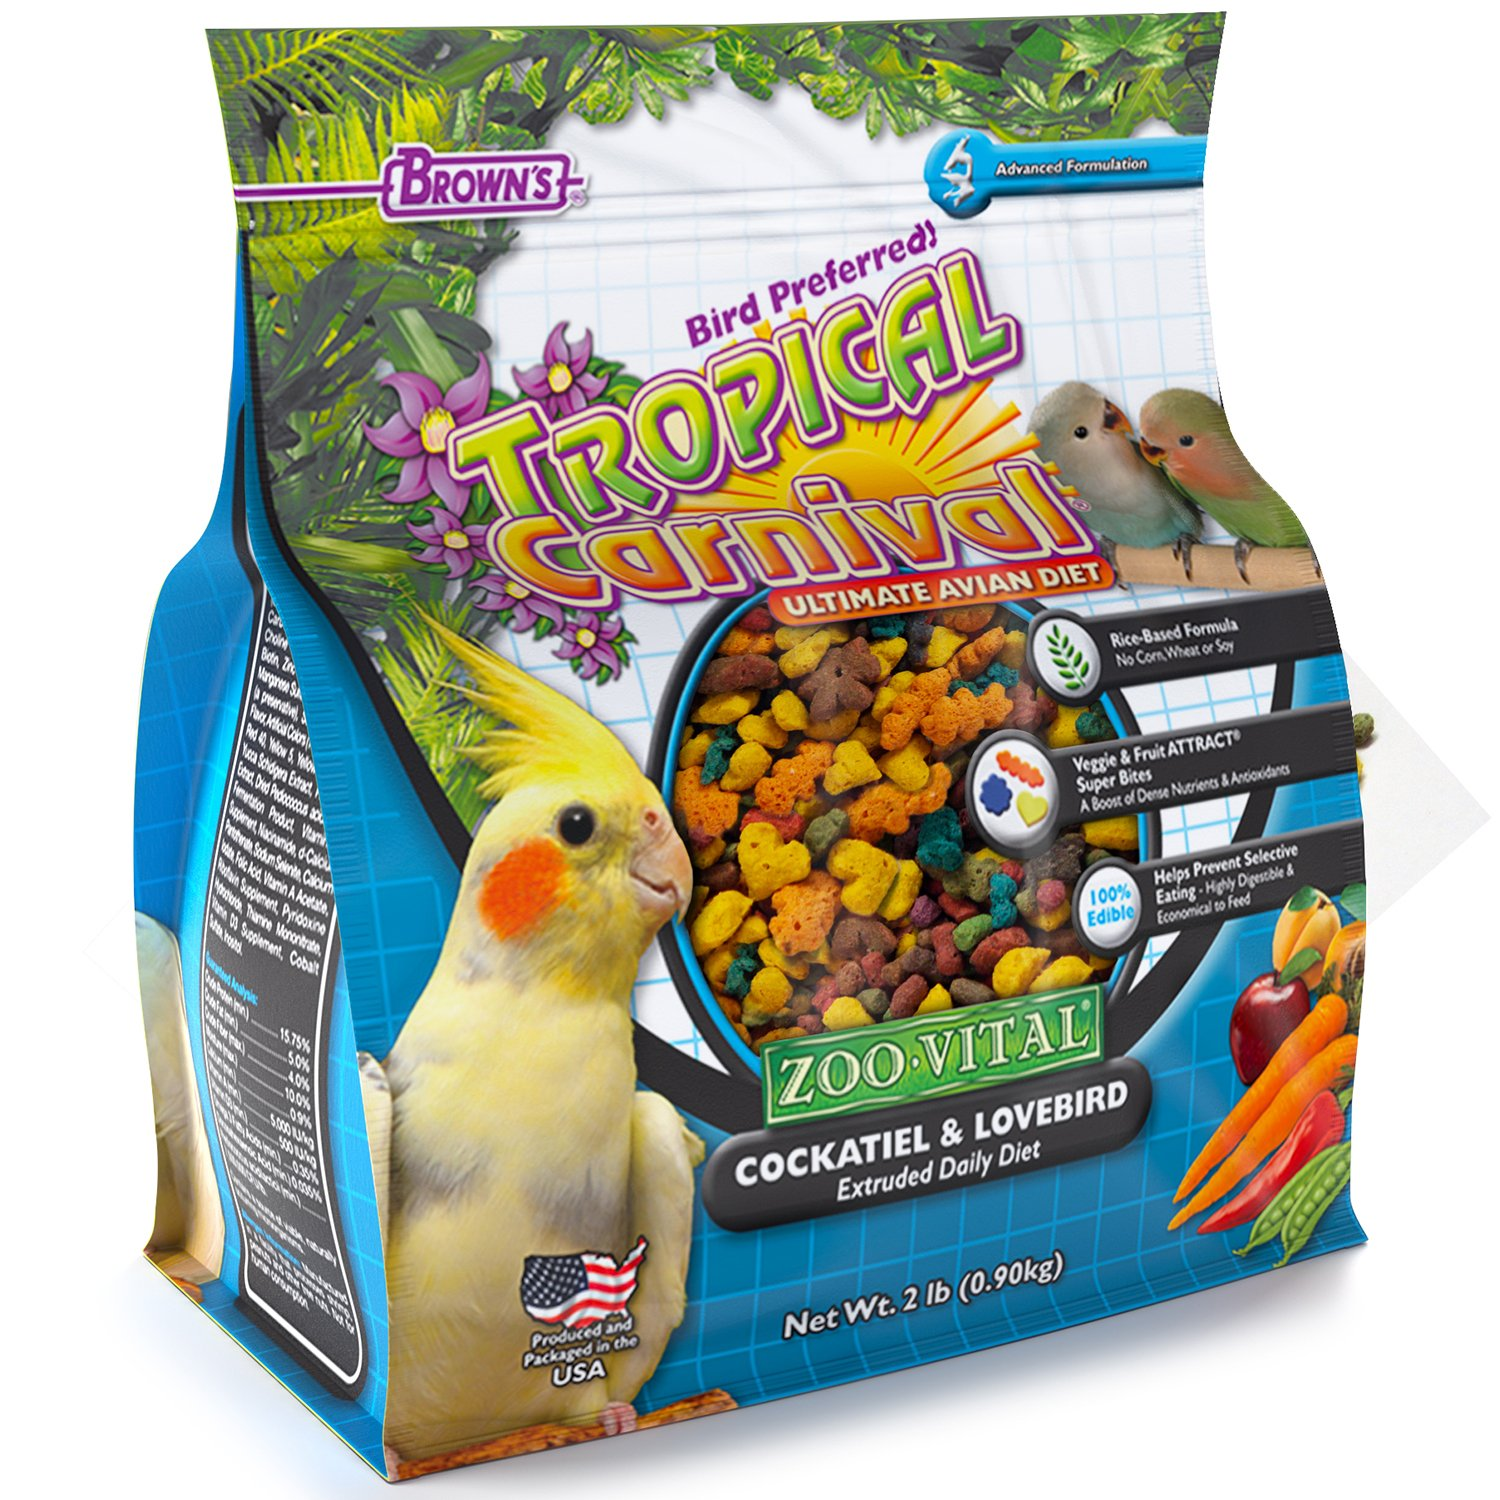 F.M. Brown's Tropical Carnival Zoo-Vital Cockatiel & Lovebird Pellet Daily Diet with Probiotics for Healthy Digestion, 2-lb Bag - Grain-Free, Rice-Based Formula, 100% Edible, Prevents Selective Eating by Tropical Carnival